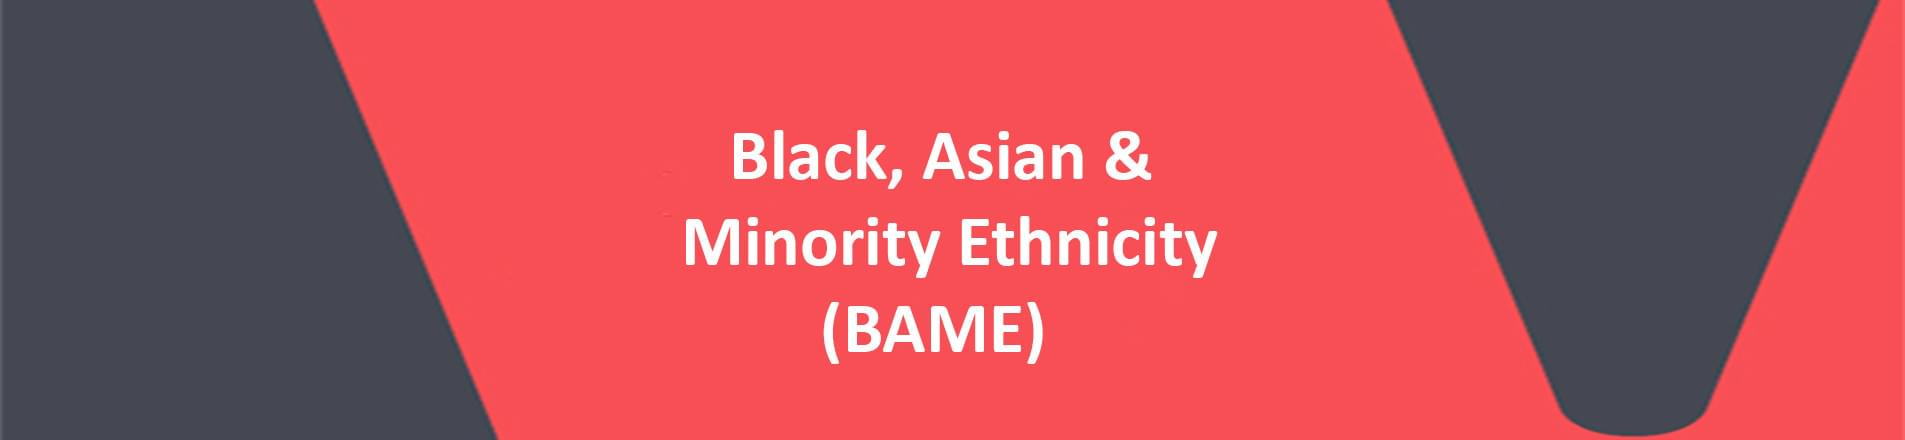 red banner with white text reading black, asian and minority ethnicity